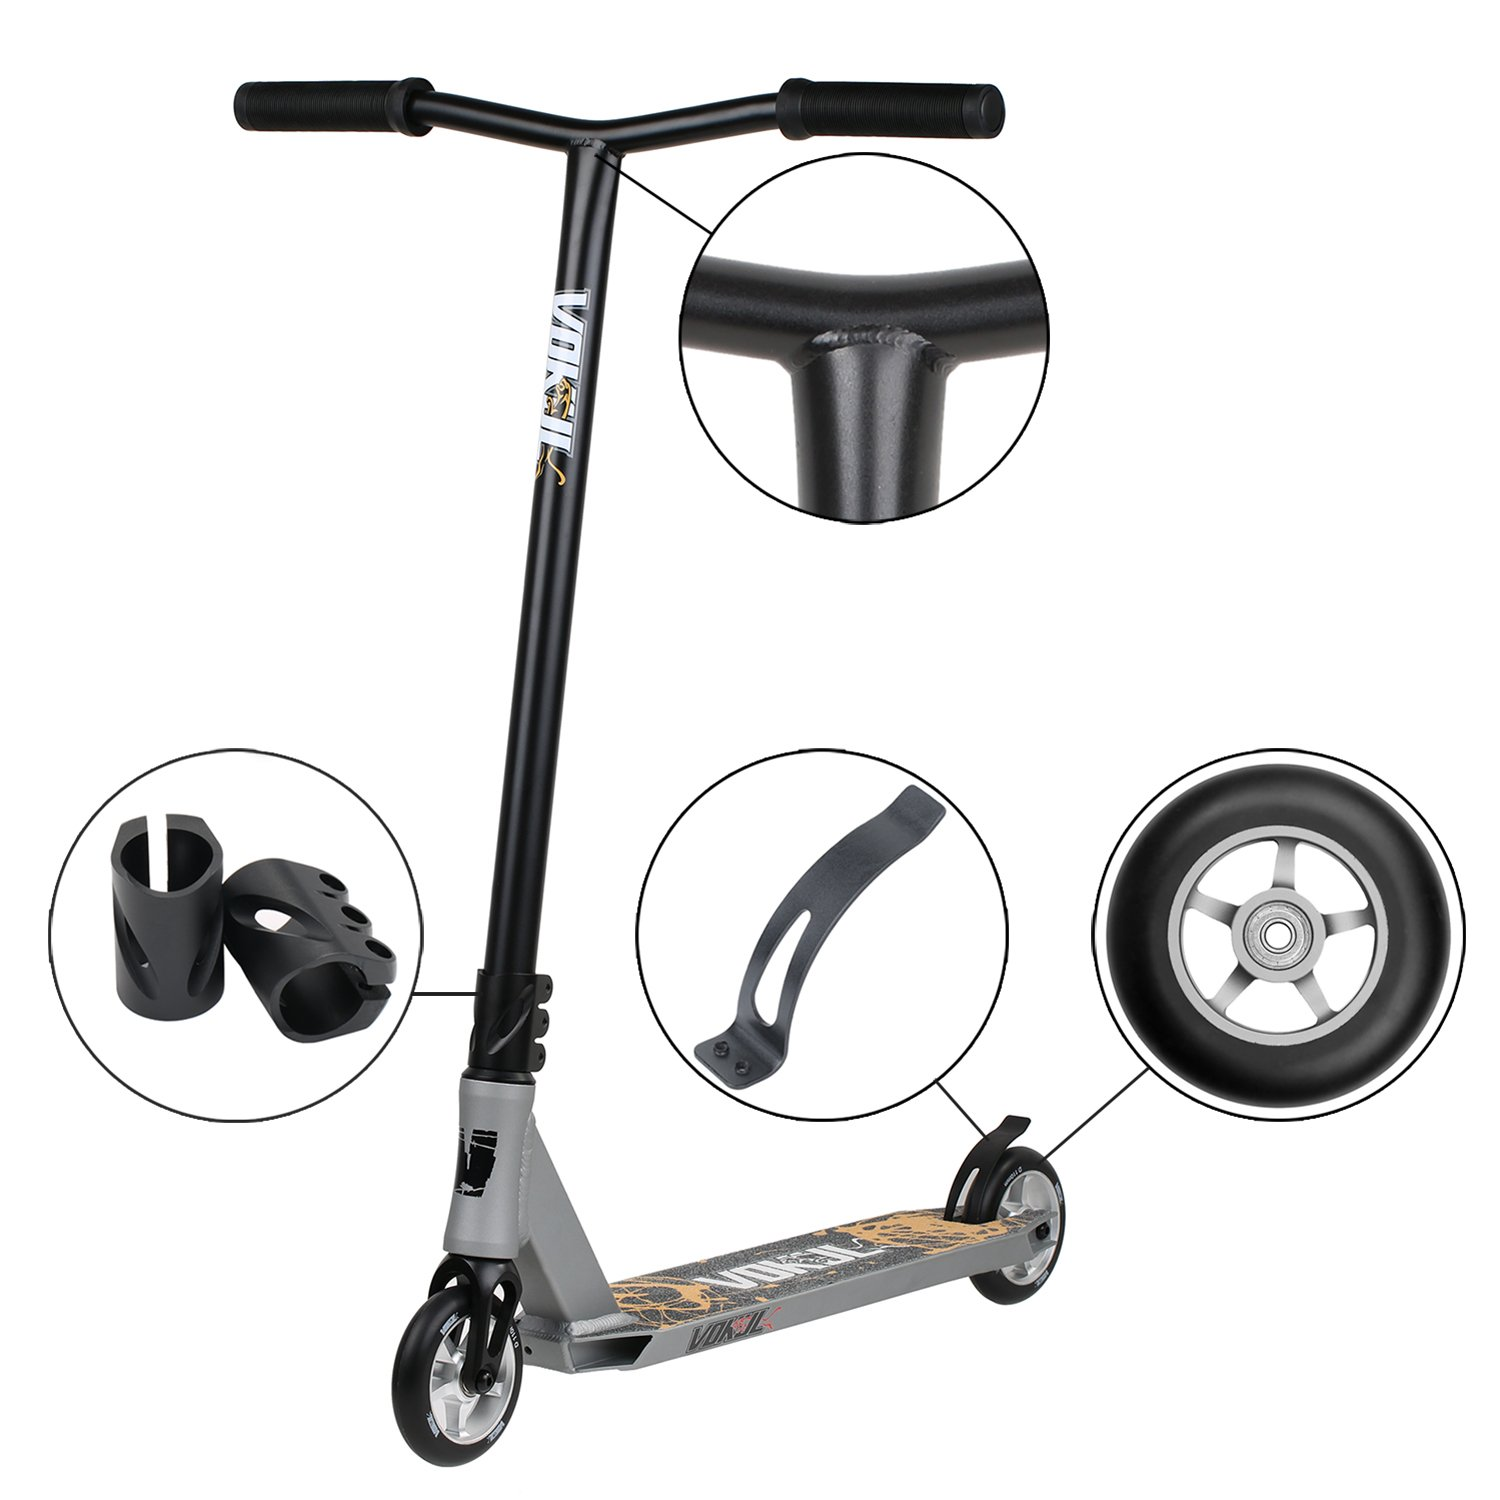 Vokul VK4 Stunt Pro Scooter for Intermediate and Advanced Rider